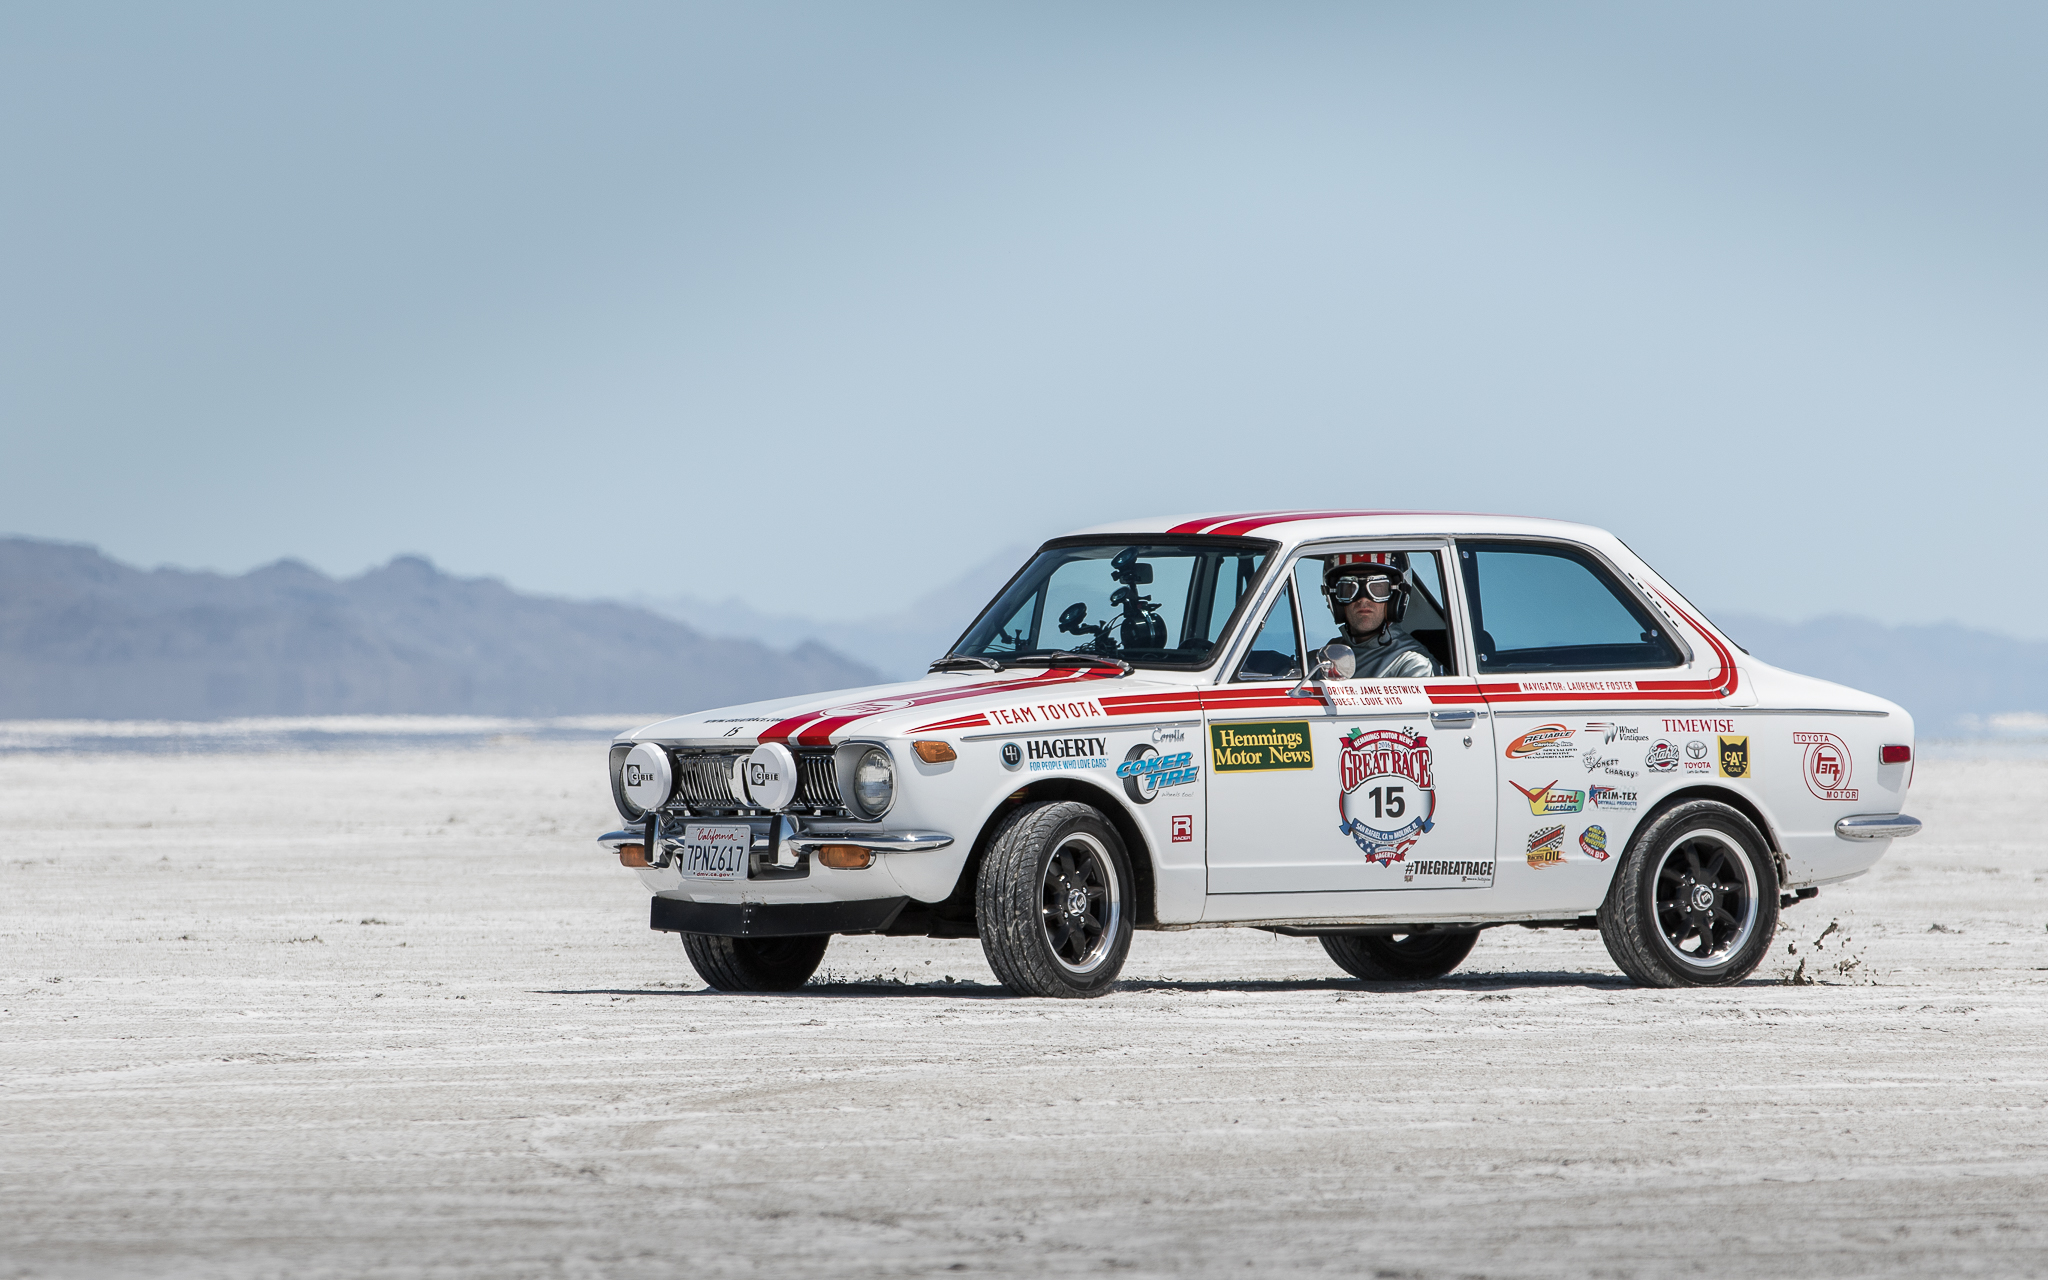 EVENT - The Great Race  CLIENT - Toyota Motor Sales  Developed and managed an entry for the Great Race to celebrate the anniversary of the Toyota Corolla